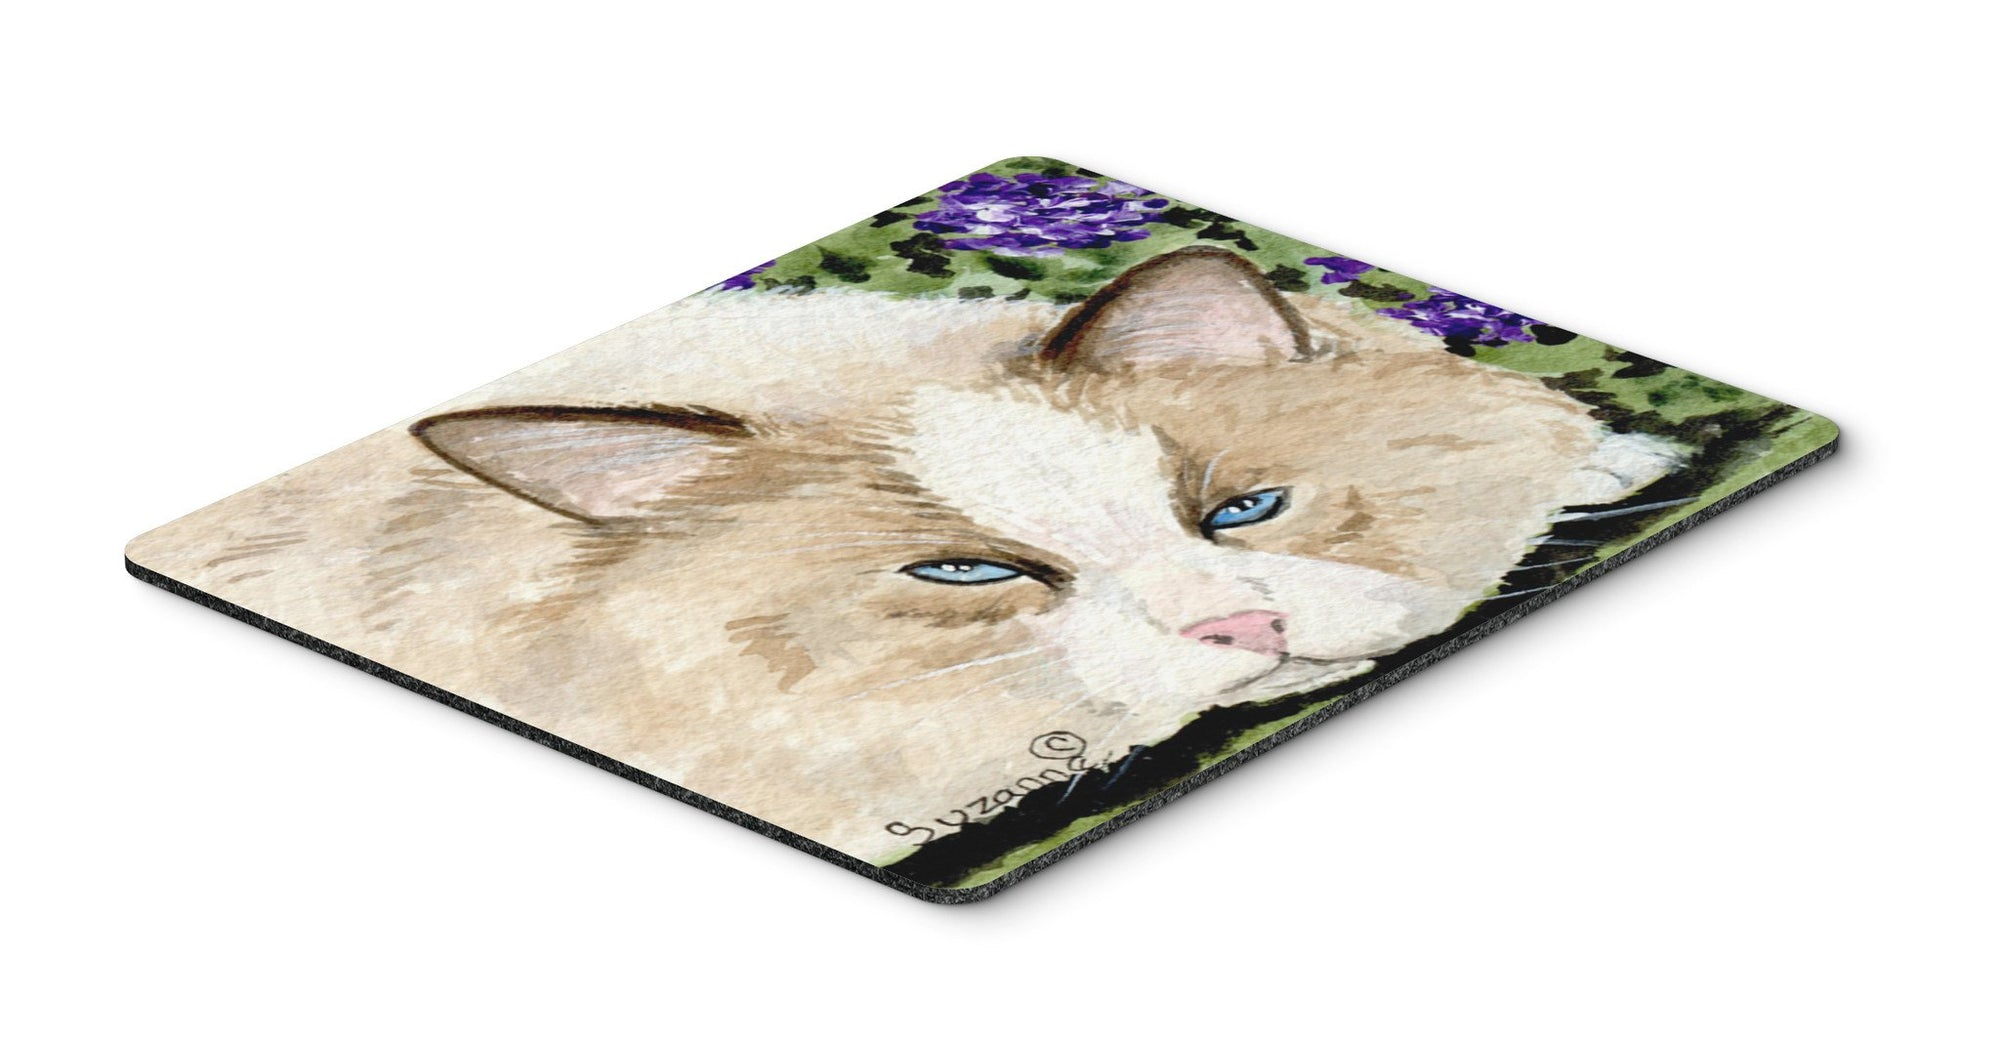 Cat Mouse pad, hot pad, or trivet by Caroline's Treasures